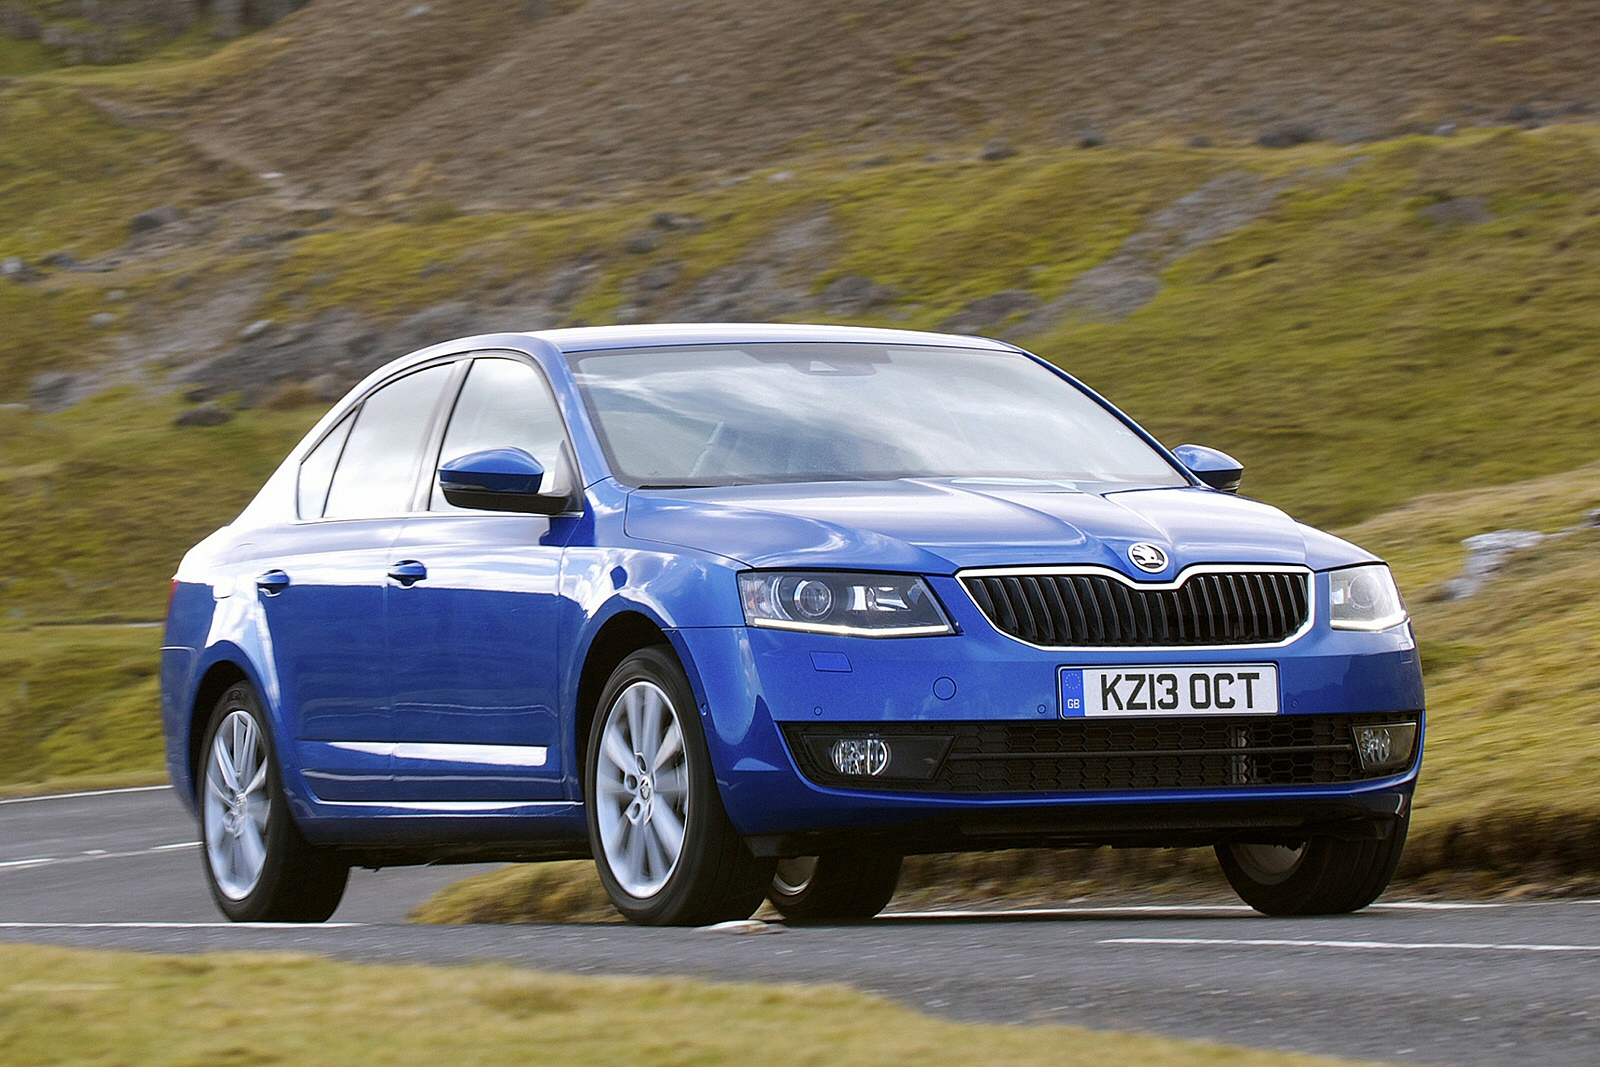 new skoda octavia 1 6 tdi cr se l 5dr dsg diesel hatchback. Black Bedroom Furniture Sets. Home Design Ideas